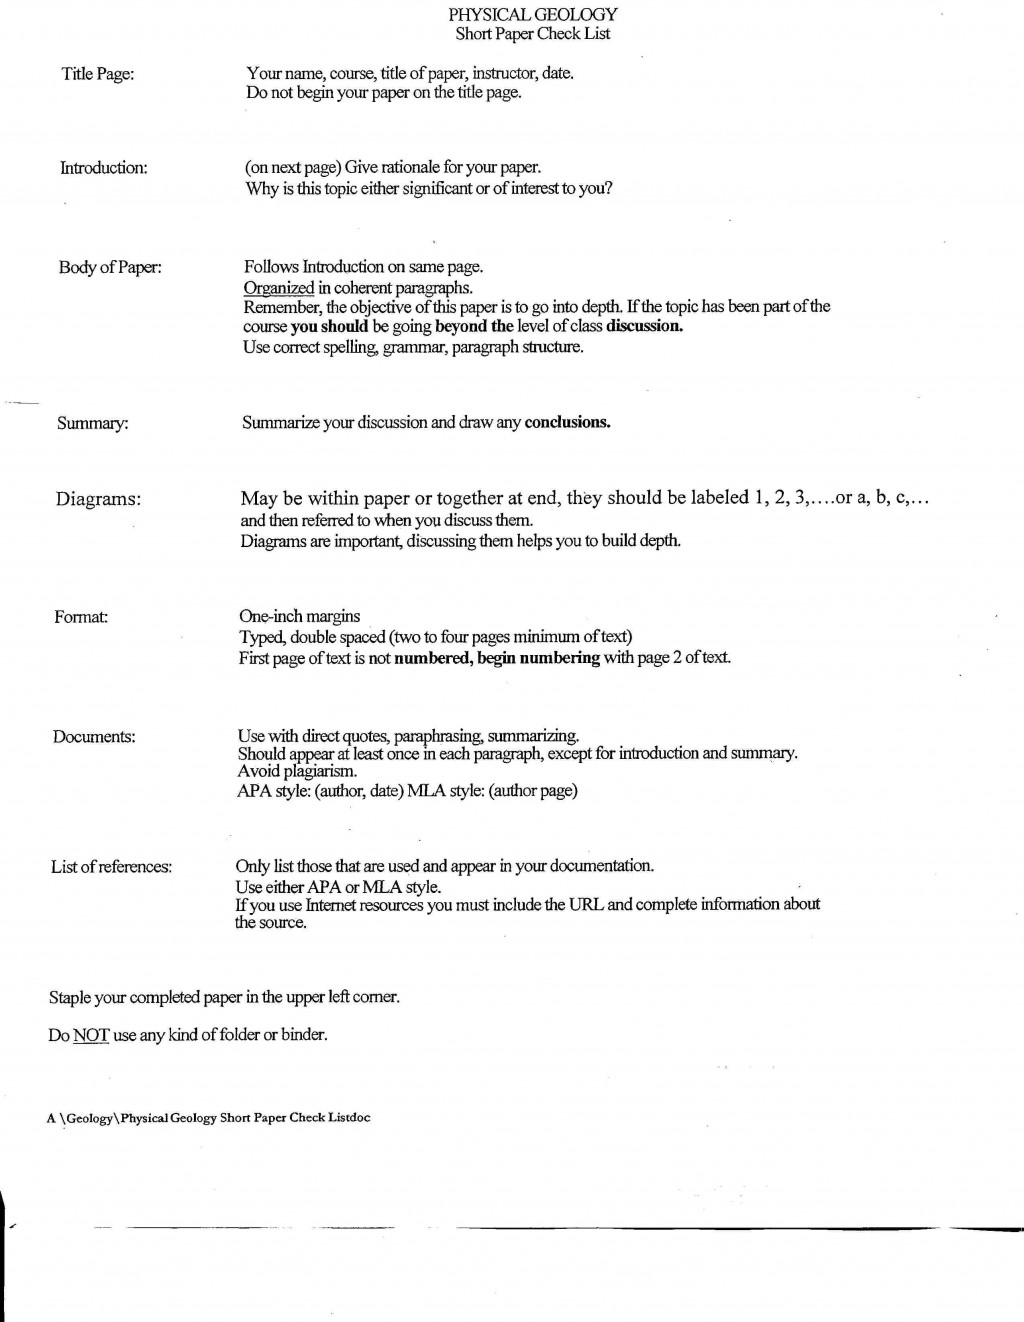 009 Asa Research Paper Format Example Short Checklist Staggering Large